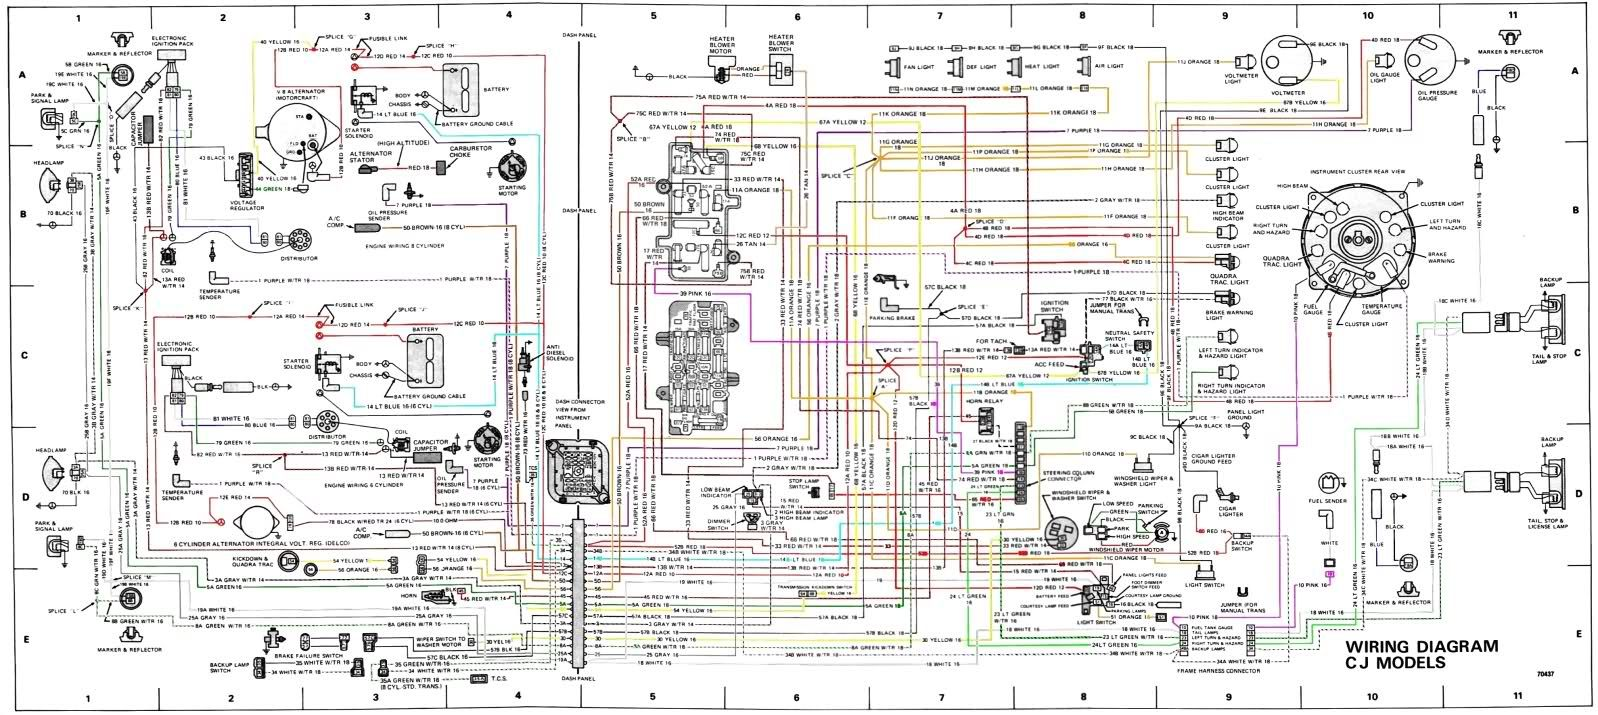 image result for jeep cj7 wiring harness diagram | jeep cj7, cj7 ...  pinterest